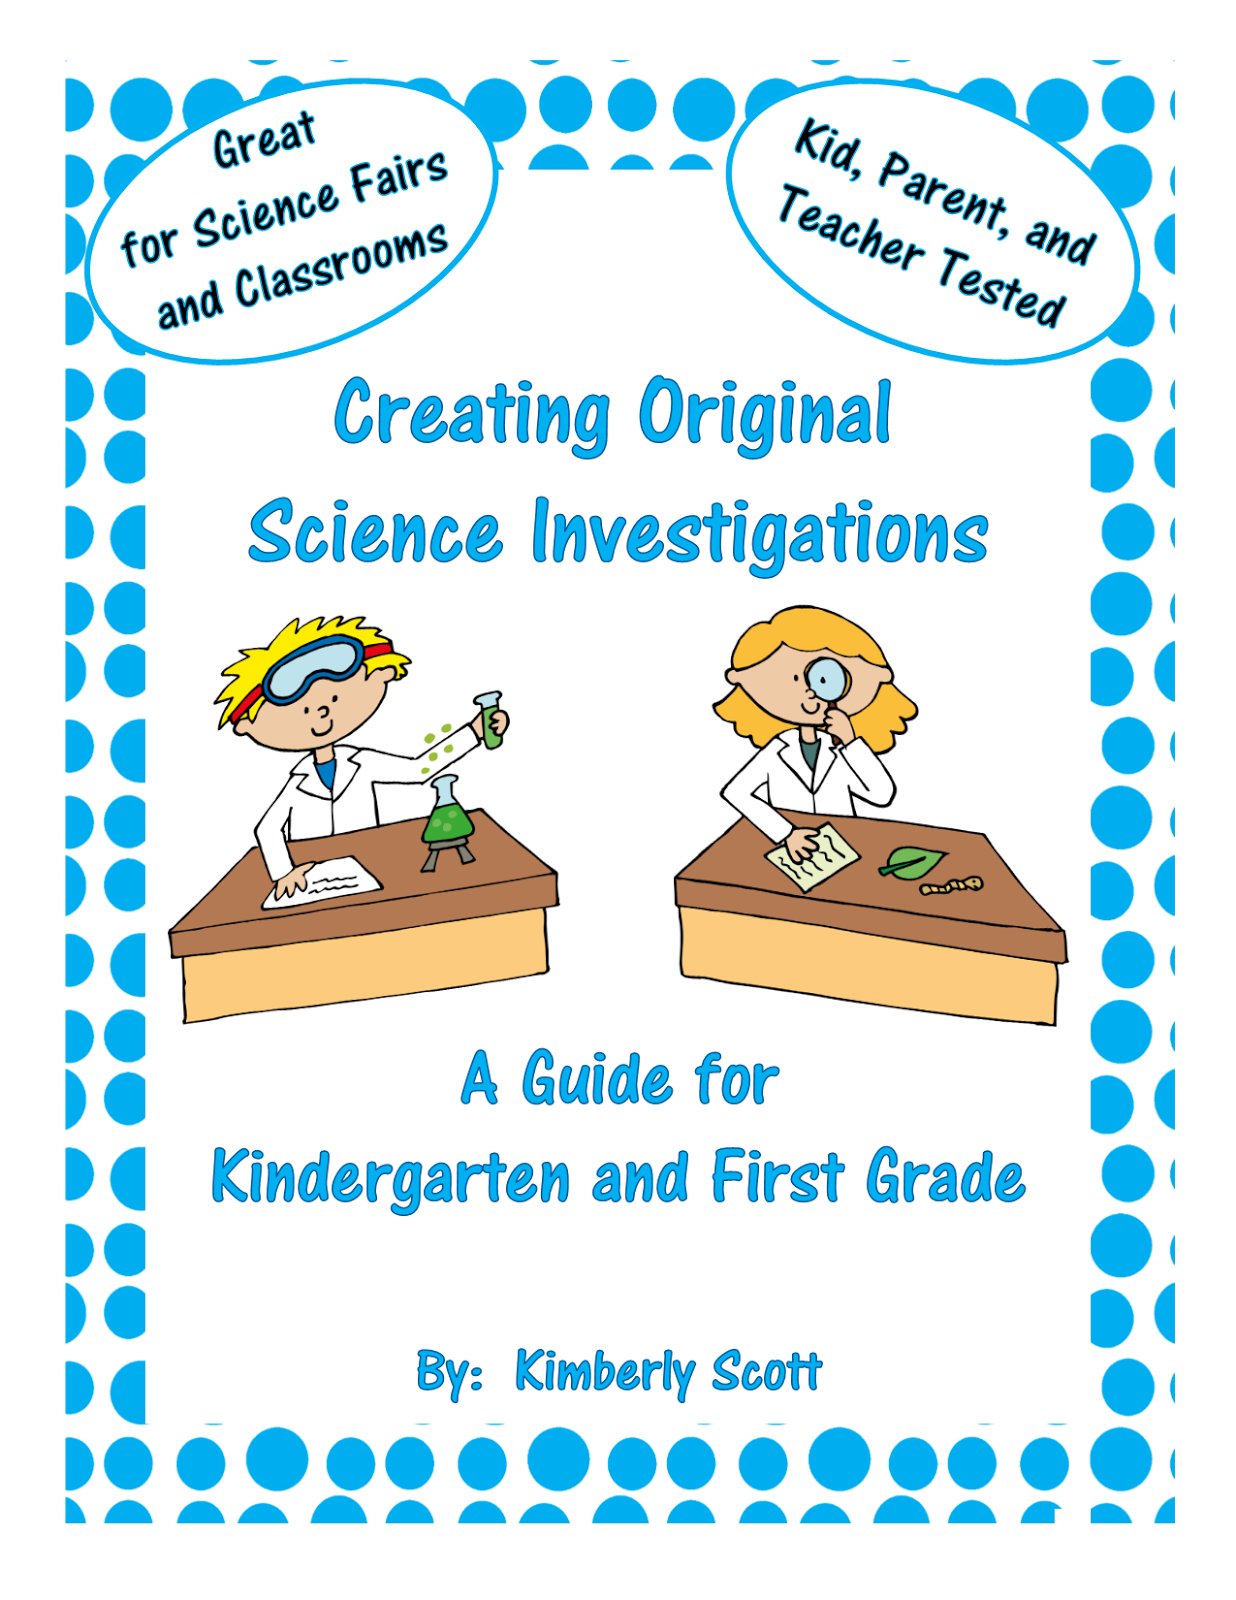 http://www.teacherspayteachers.com/Product/Create-Science-Investigations-for-K-and-1st-Grade-Classrooms-and-Science-Fairs-1200400